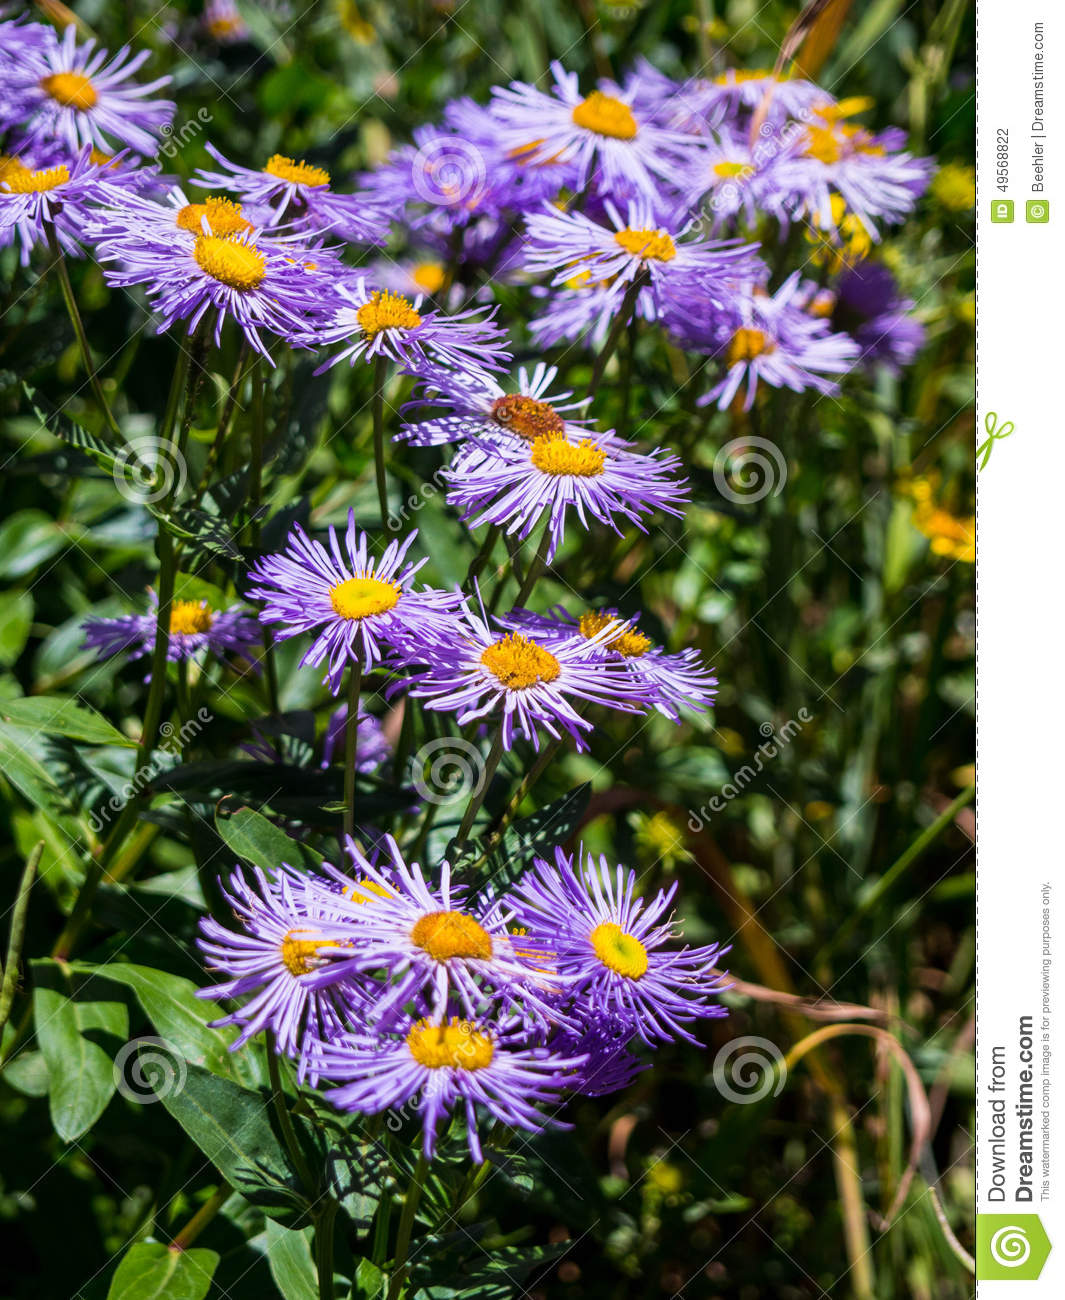 Colorado wildflowers stock photo image of outdoors back 49568822 royalty free stock photo izmirmasajfo Choice Image